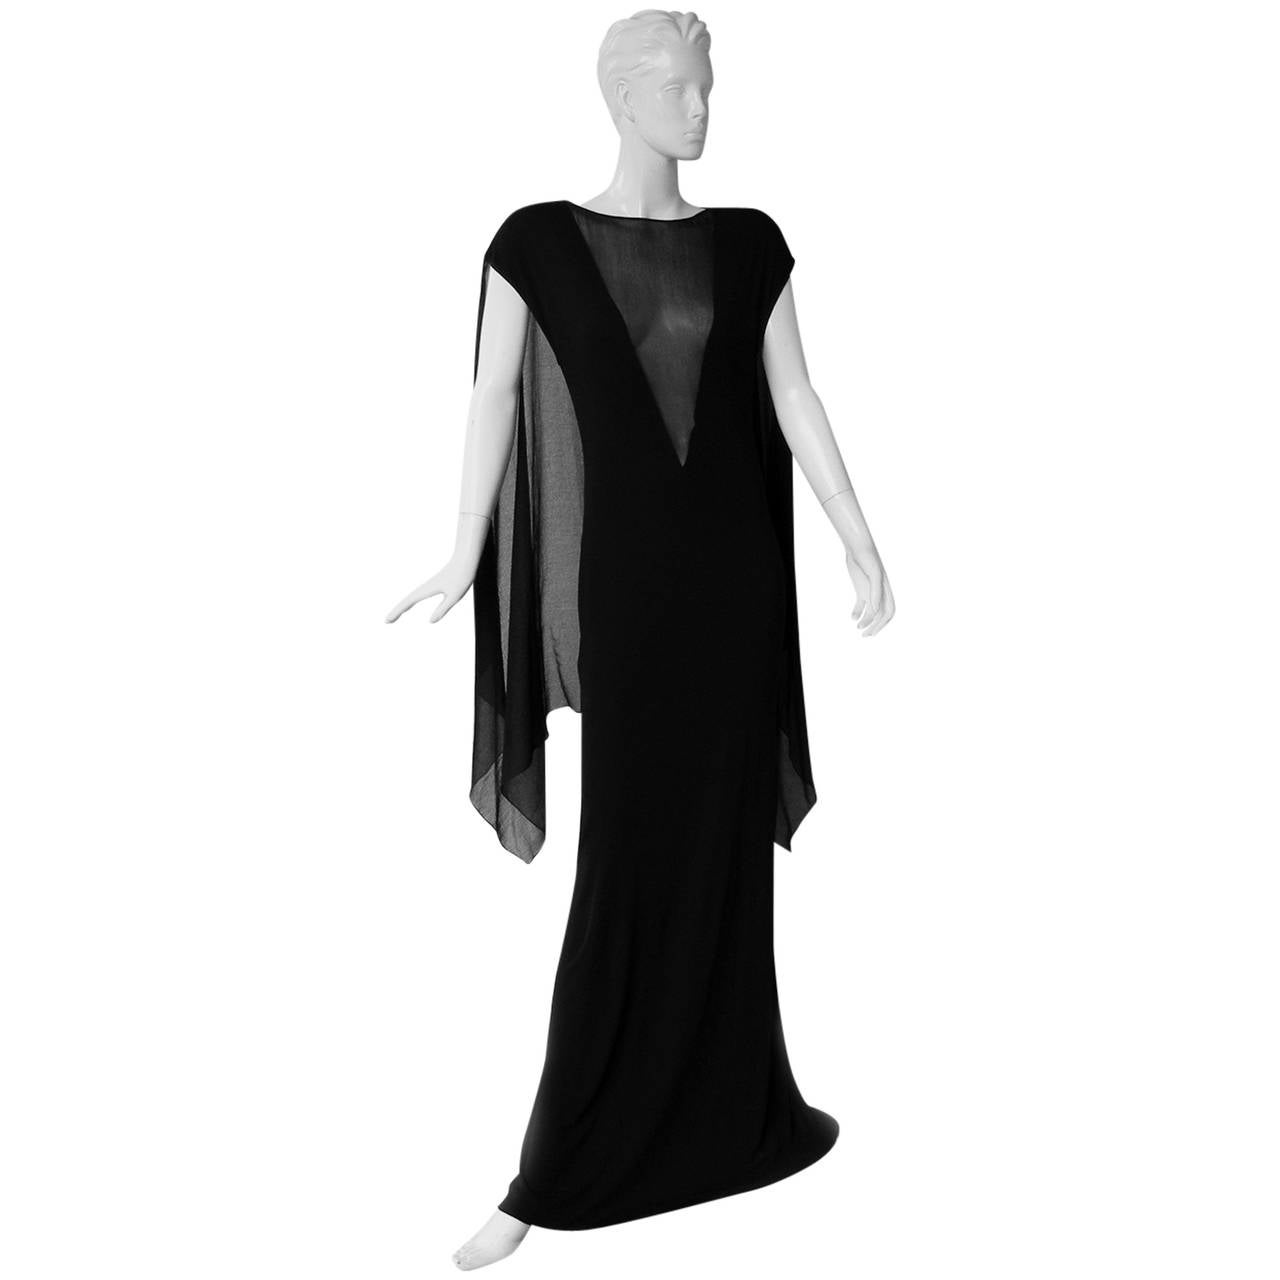 Jean Paul Gaultier Dramatic Goth Dress Gown with Flowing Cape   For Sale